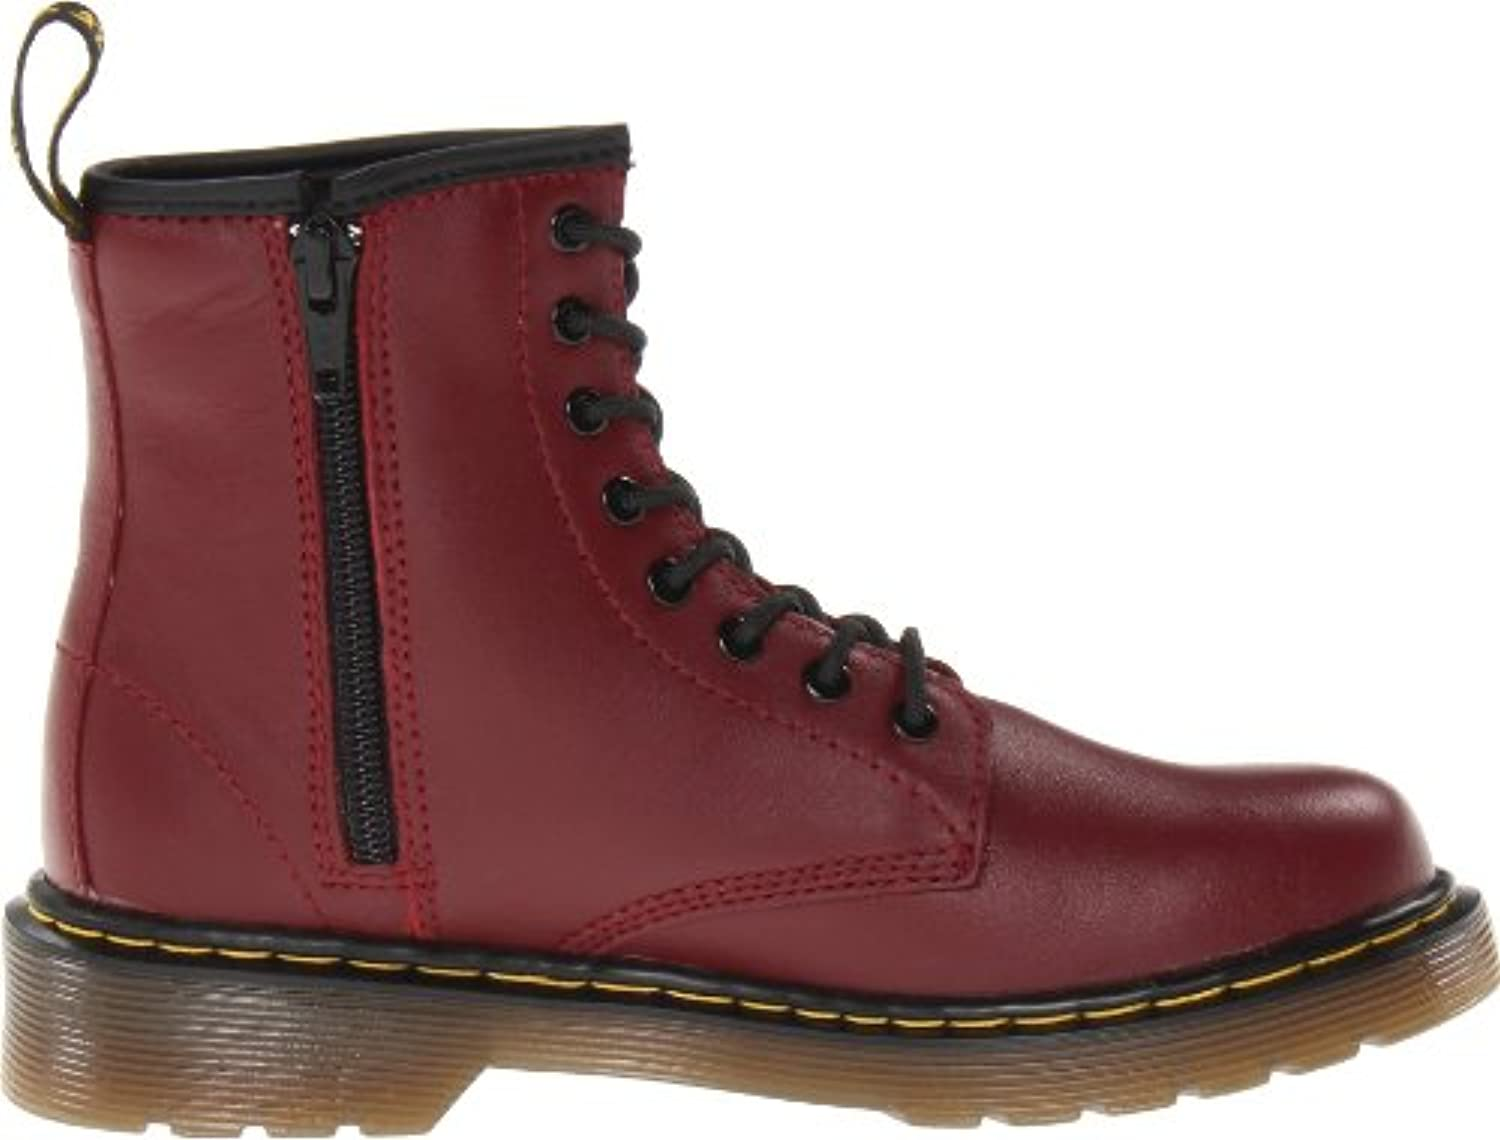 Dr. Martens Delaney Softy T Cherry Red, Unisex Kids' Boots, Red (cherry Red), 1UK (33 EU)